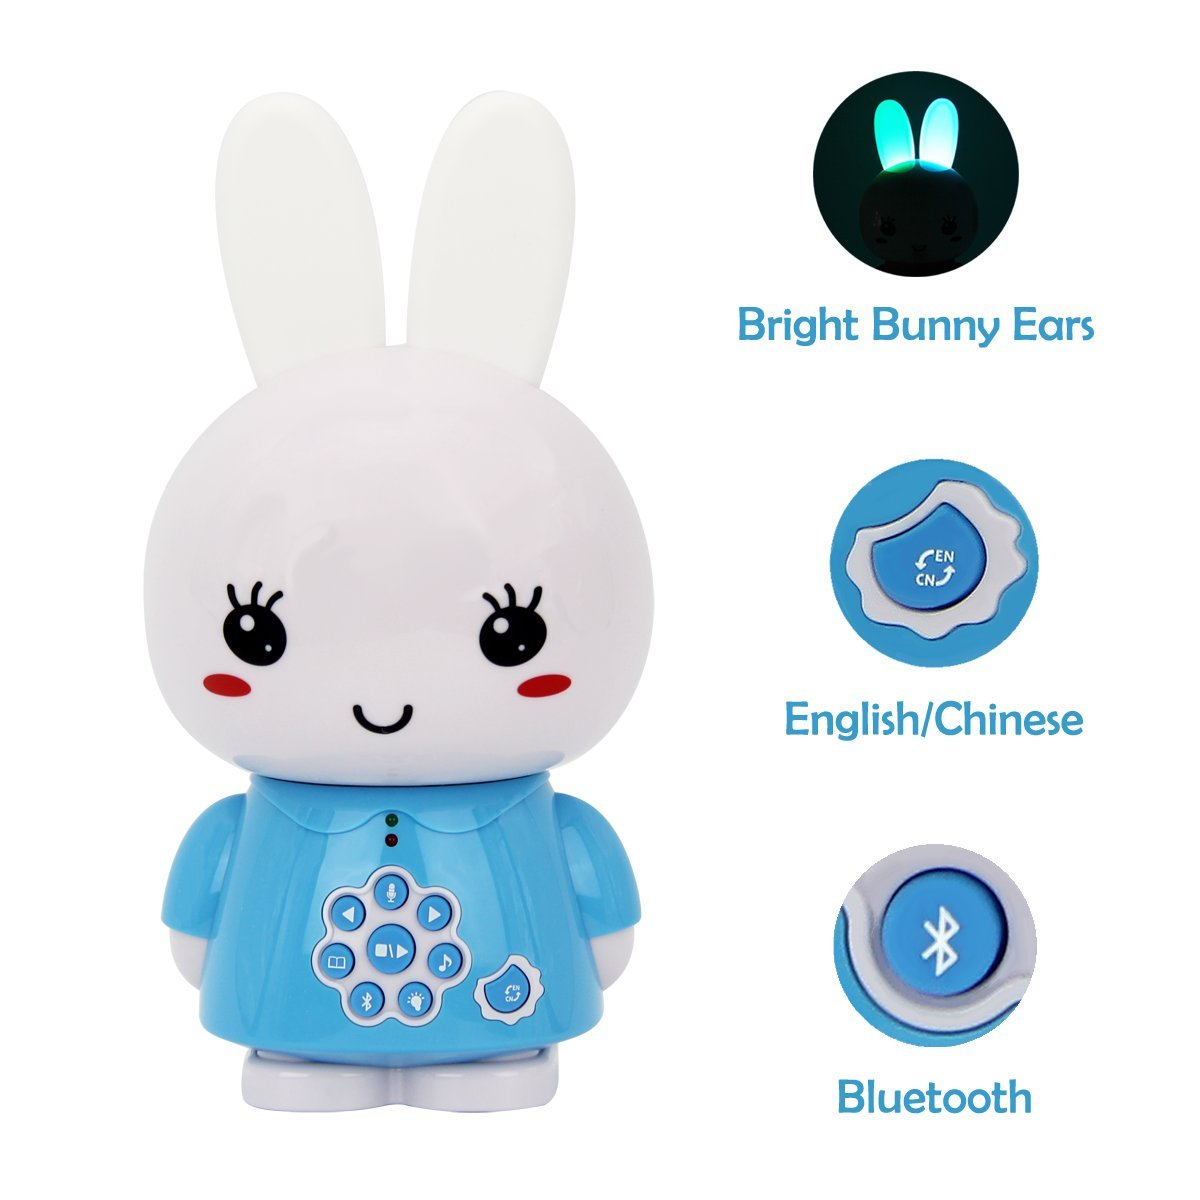 alilo G6+ Honey Bunny 8GB Children MP3 Player Hifi Bluetooth Music Speaker for Kids with LED Night Light Rechargeable Battery (Bilingual Blue)